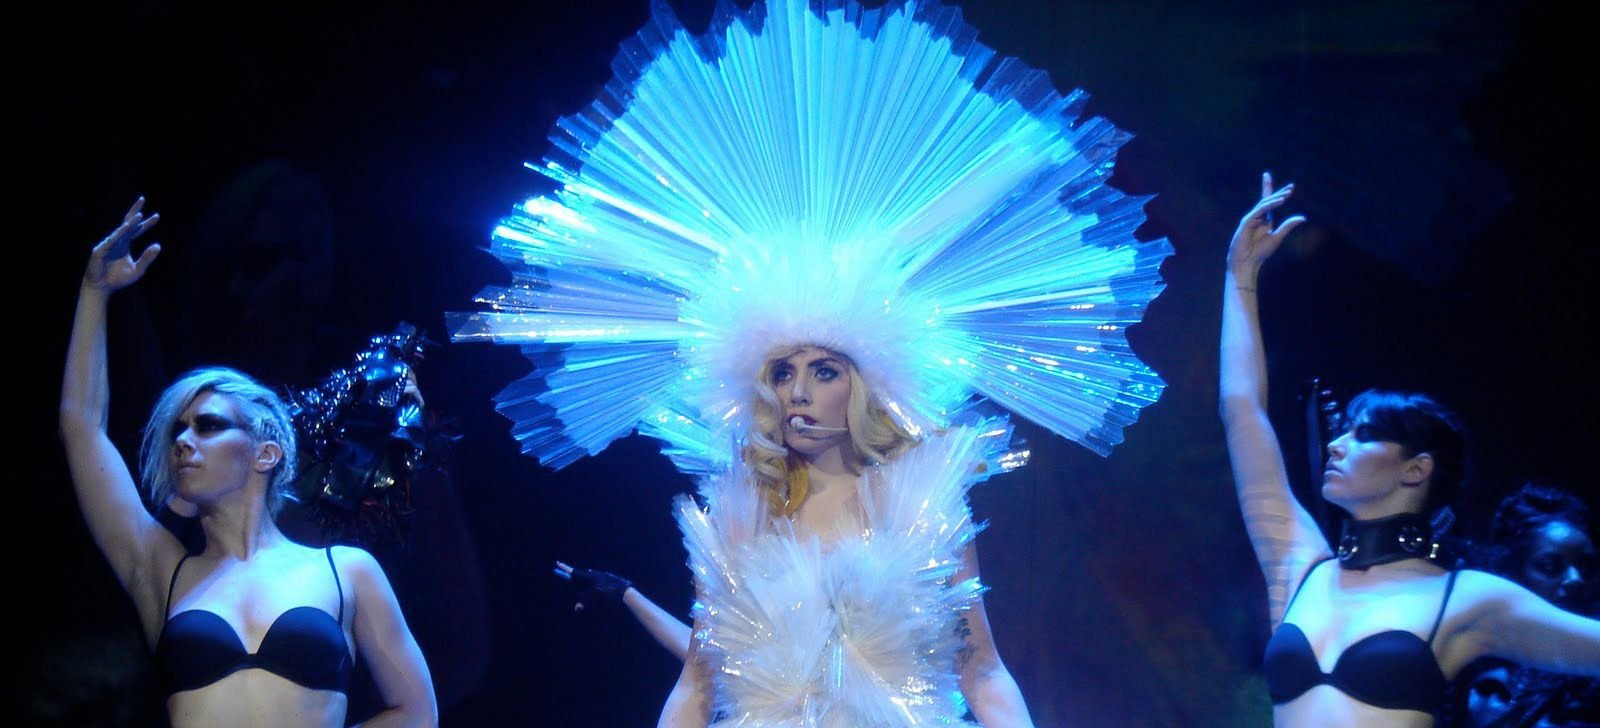 Lady Gaga Presents the Monster Ball Tour: At Madison Square Garden